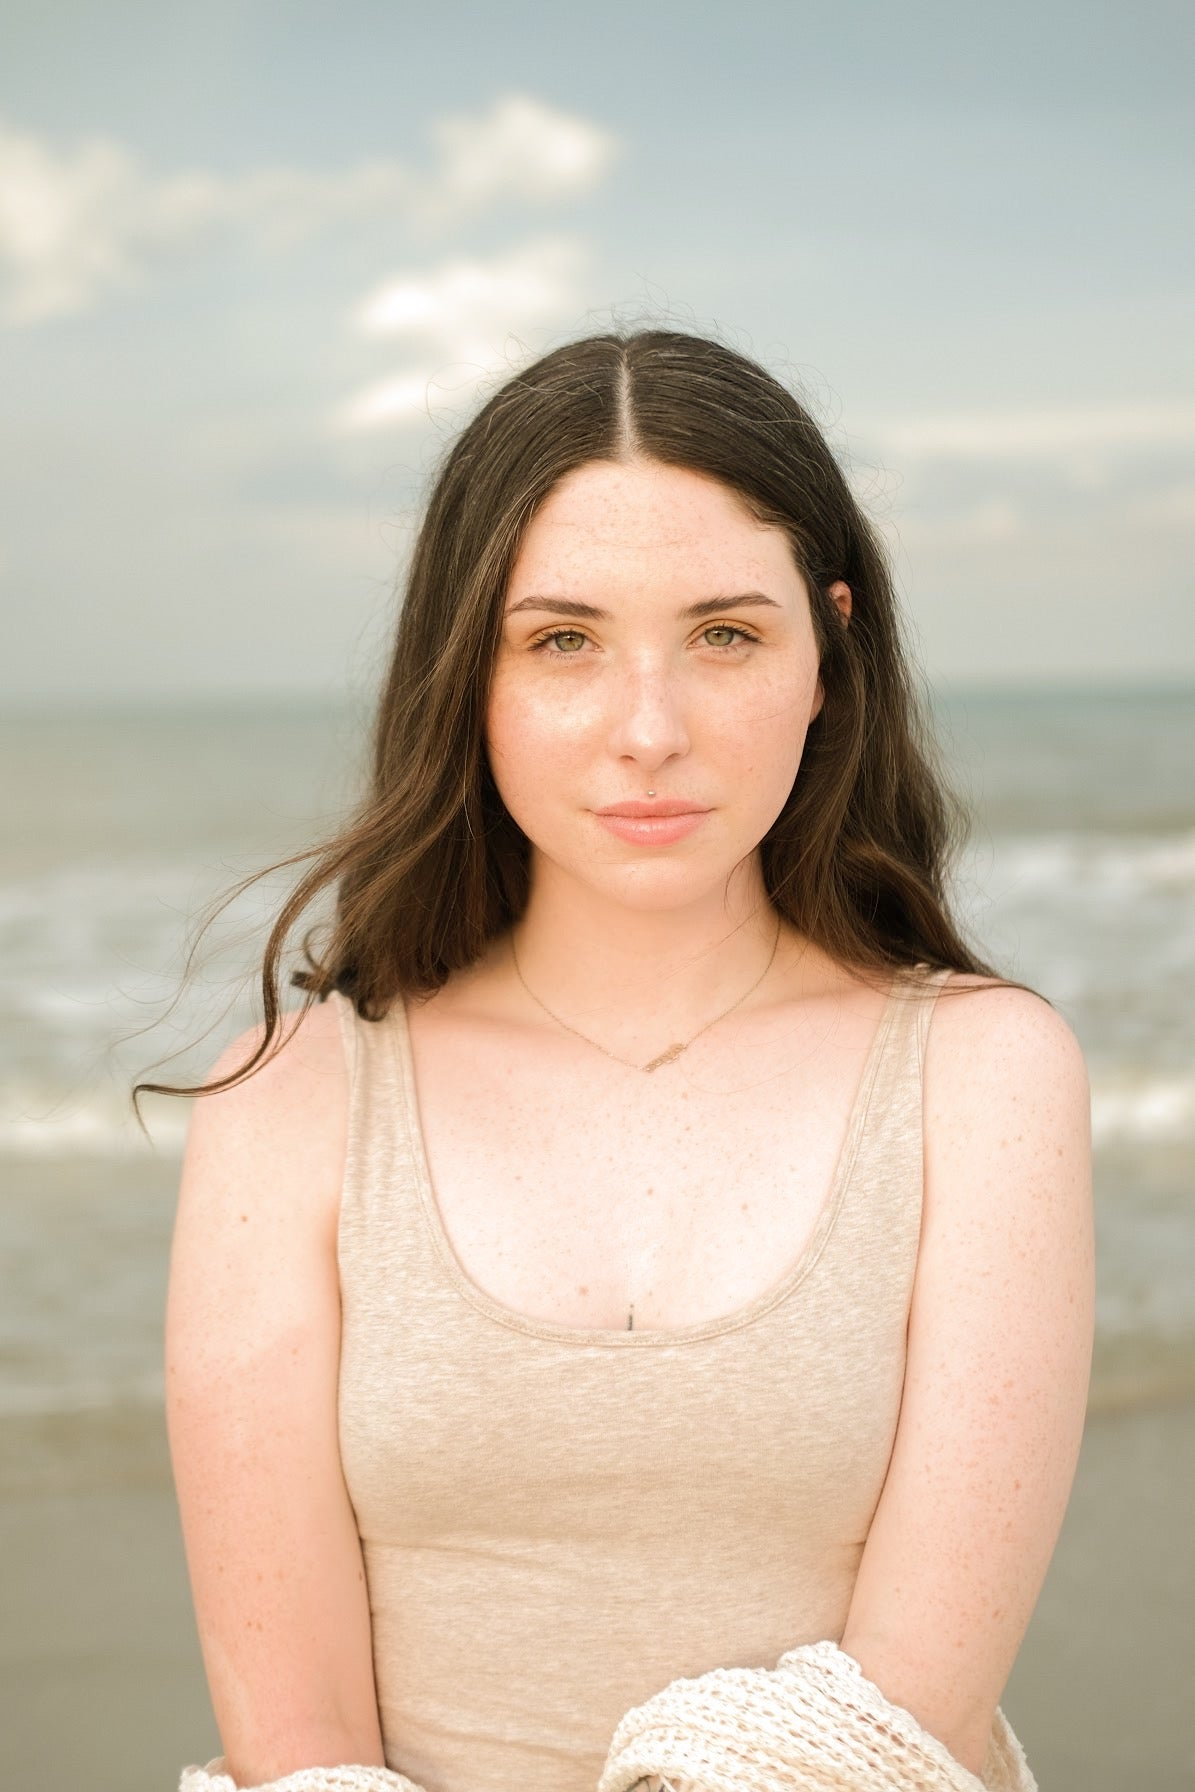 Porcelain skin girl - serious expression - beach background that looks like a renaissance painting.